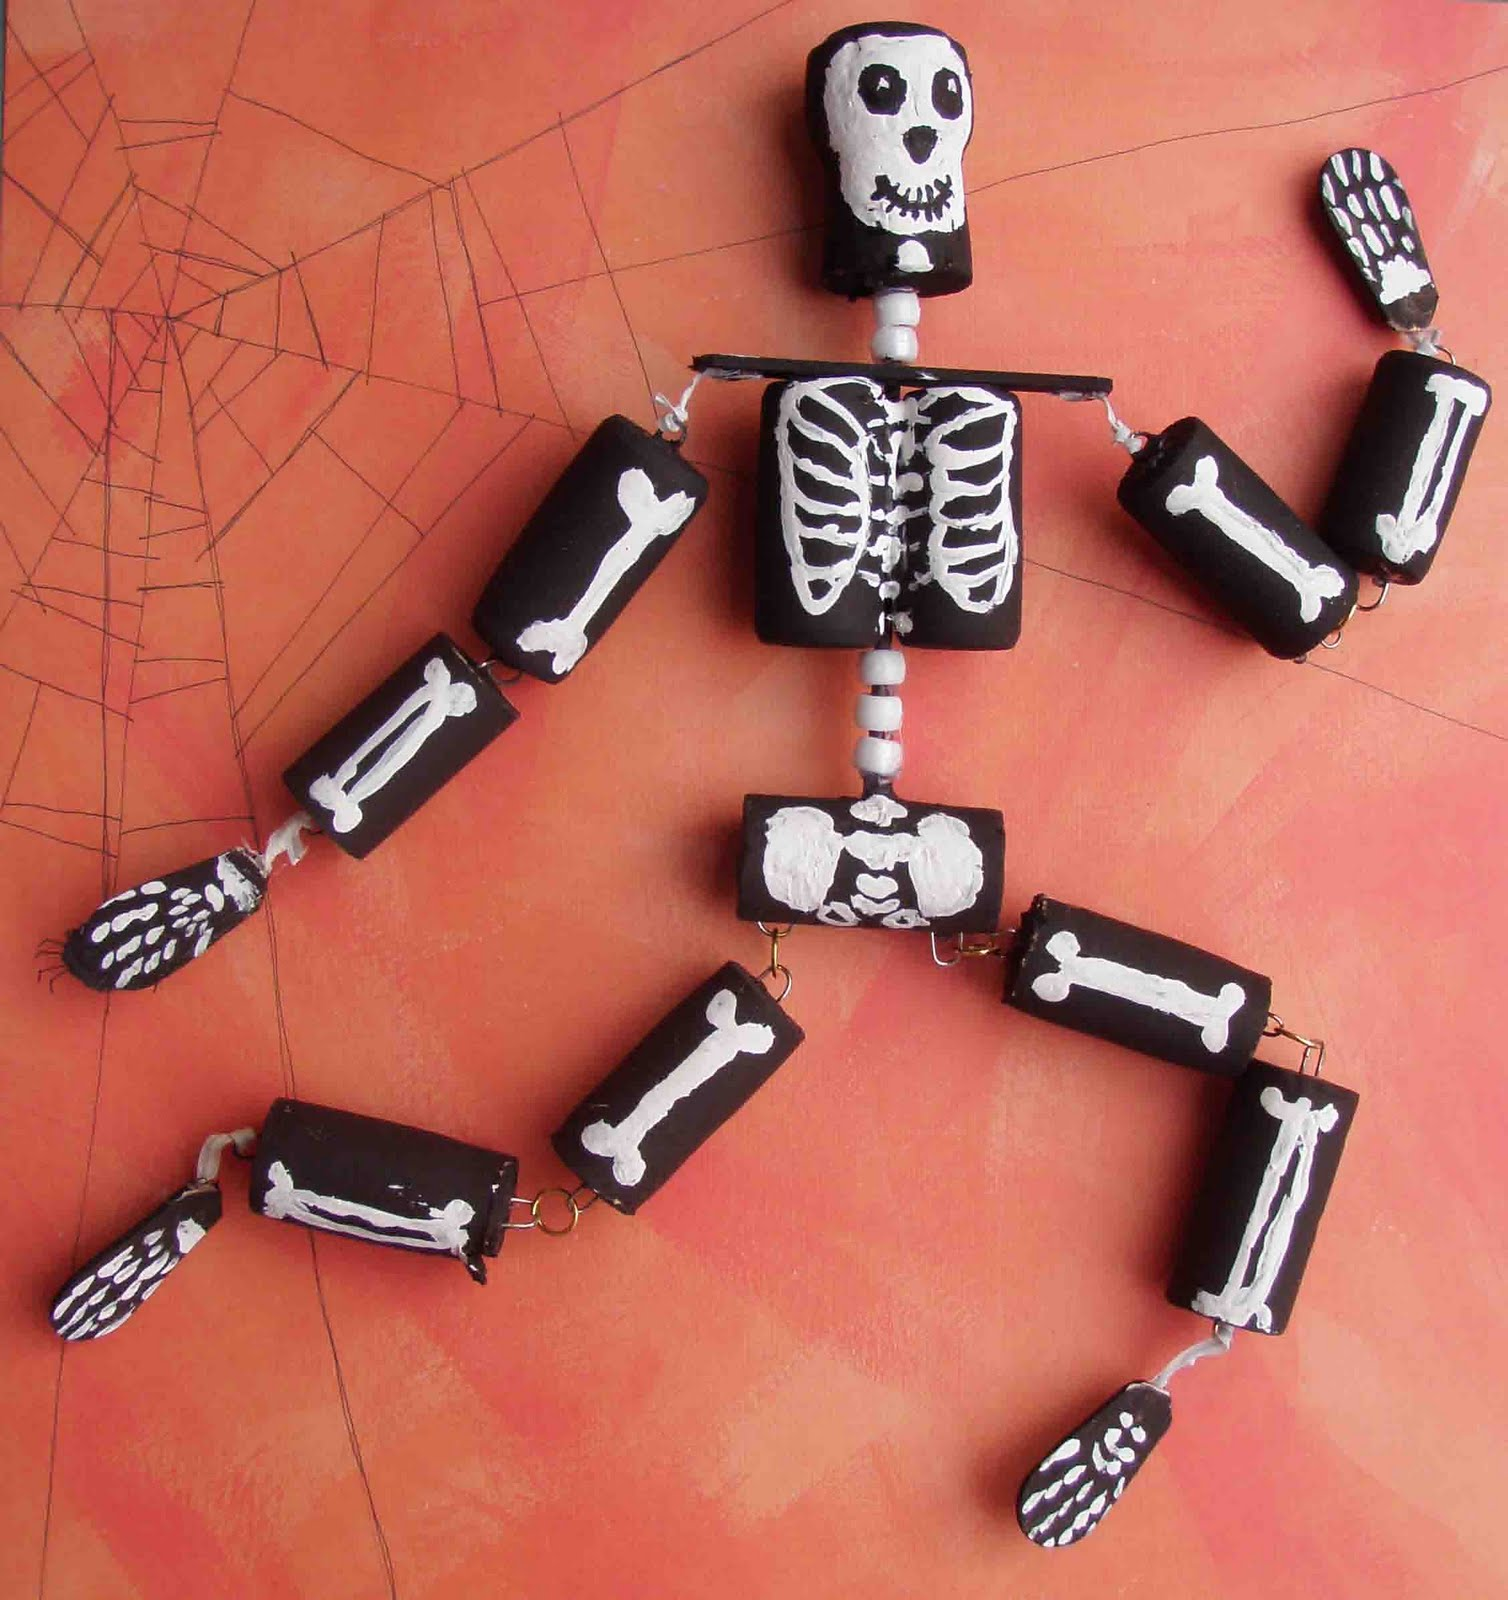 Wine bottle corks crafts - Skeleton Man Was Made From 11 Wine Corks And One Champagne Cork Skull His Backbone Is A Bamboo Skewer Fitted With Pony Bead Vertebrate